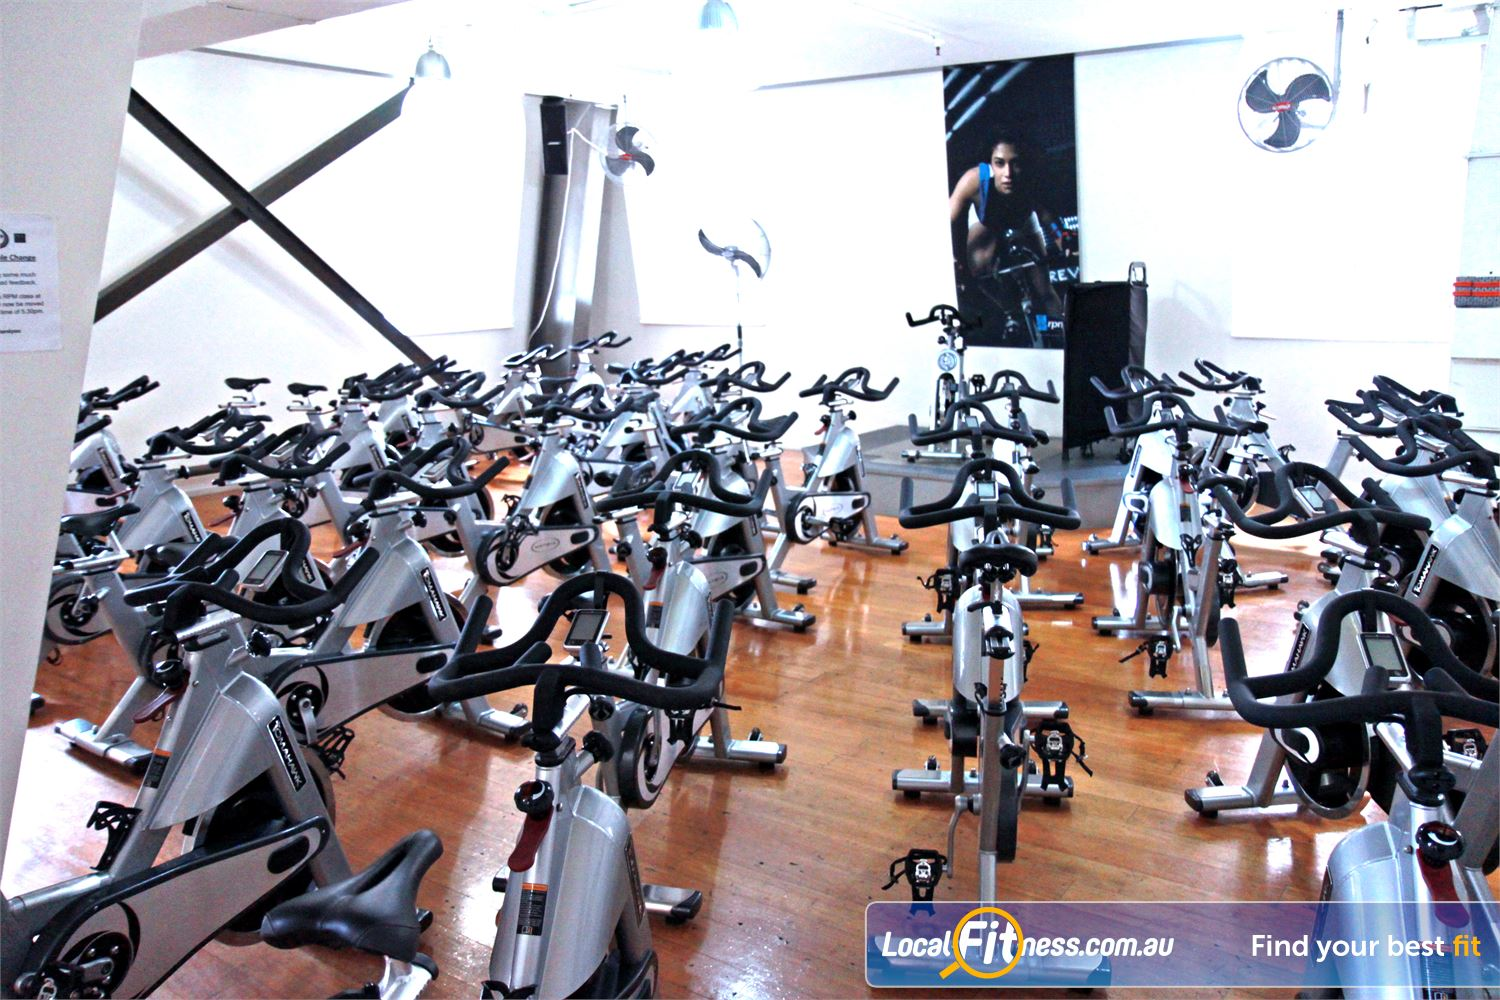 Goodlife Health Clubs Martin Place Near World Square Dedicated Sydney spin cycle studio with the Tomahawk S Series cycle bikes.